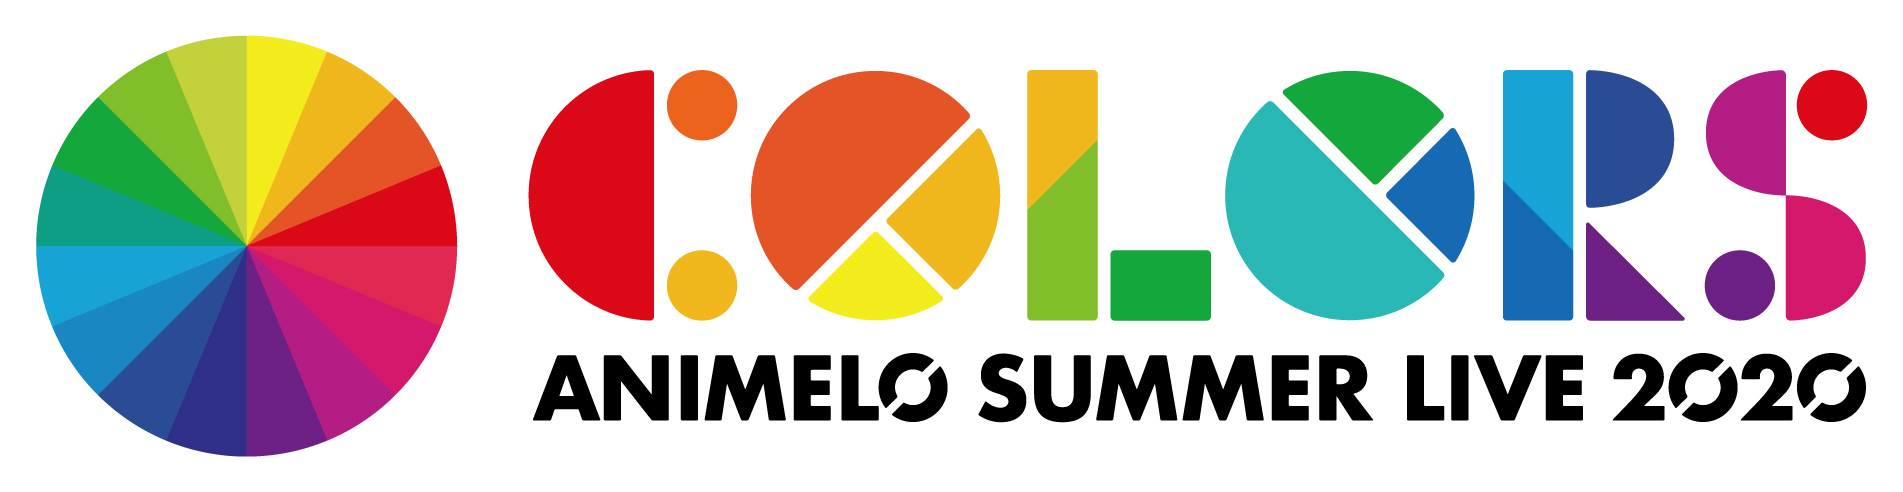 『Animelo Summer Live 2020 –COLORS-』ロゴ (c)Animelo Summer Live 2020